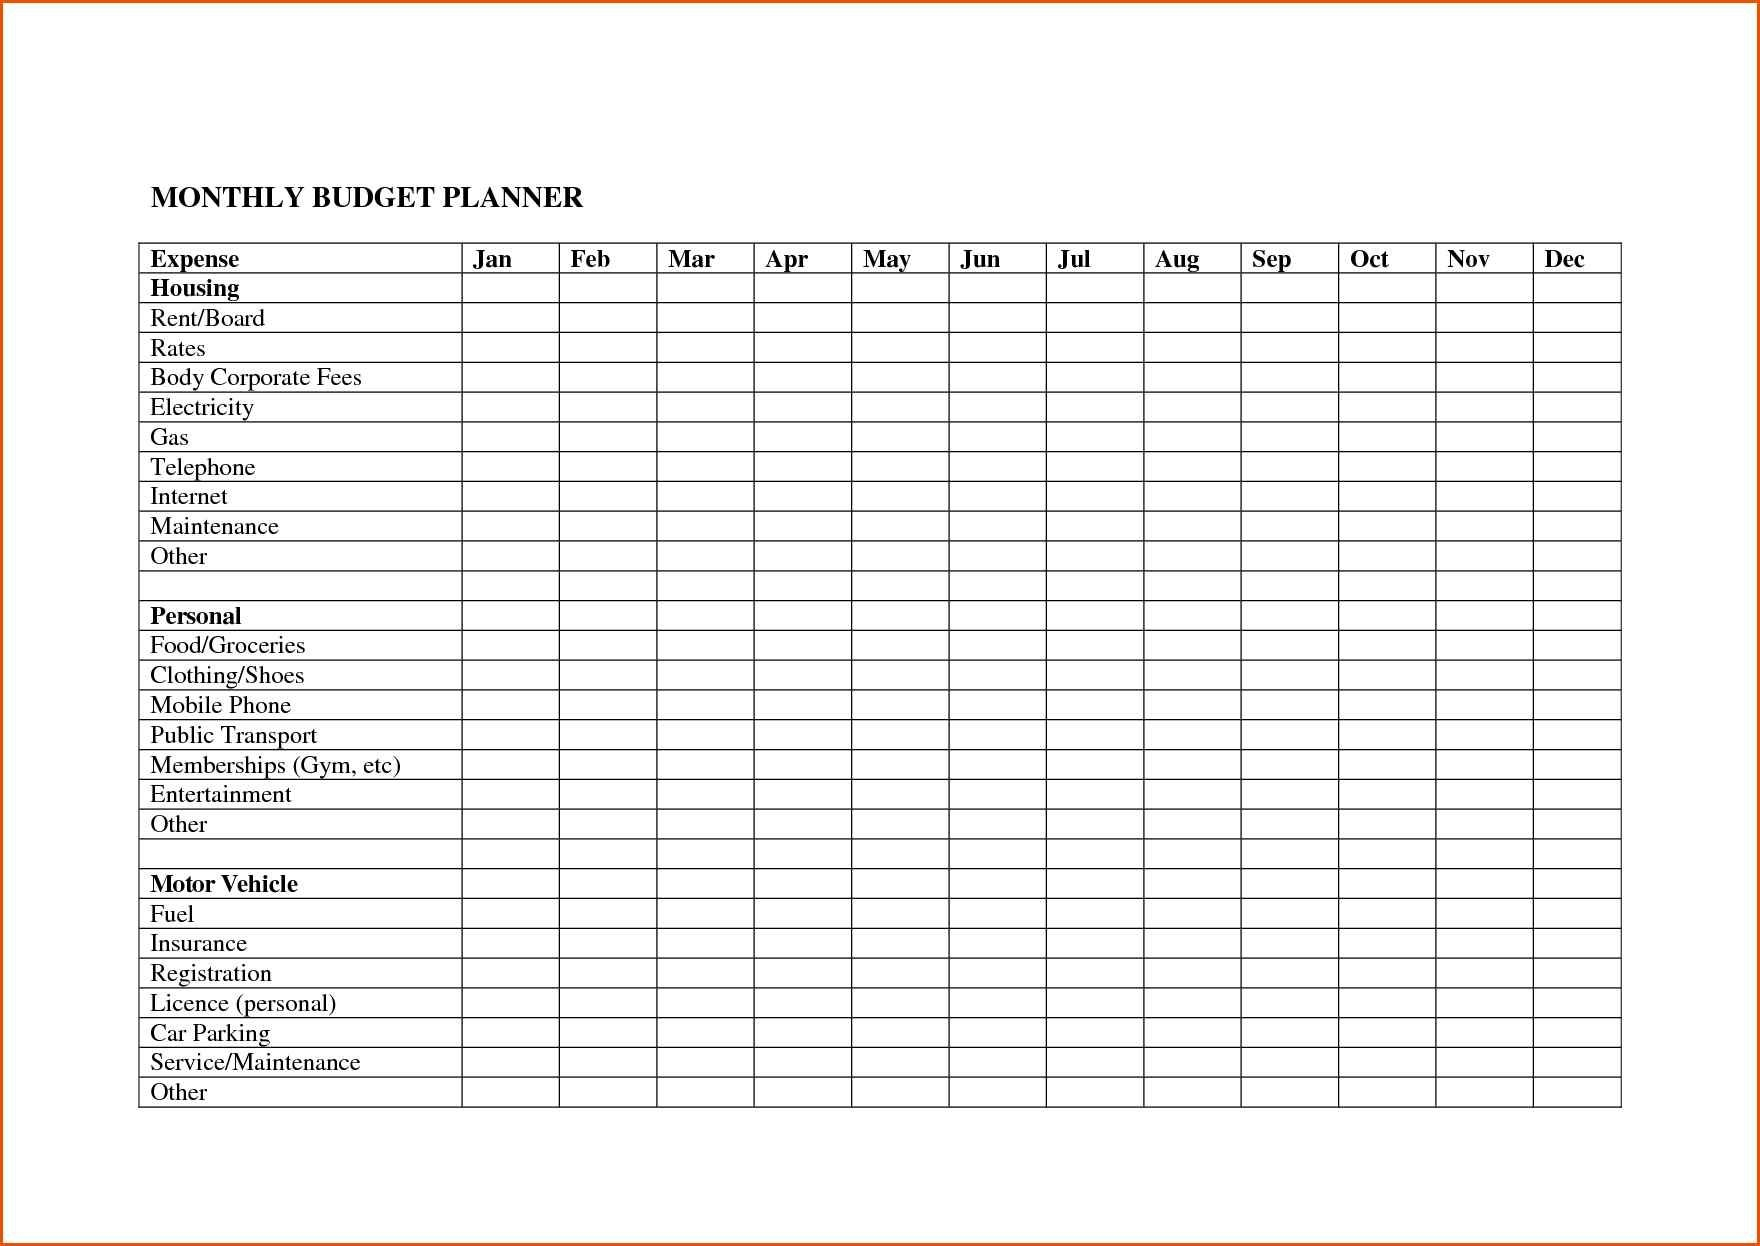 Monthly Bill Spreadsheet Template Free | Papillon-Northwan within Monthly Bill Spreadsheet Template Free